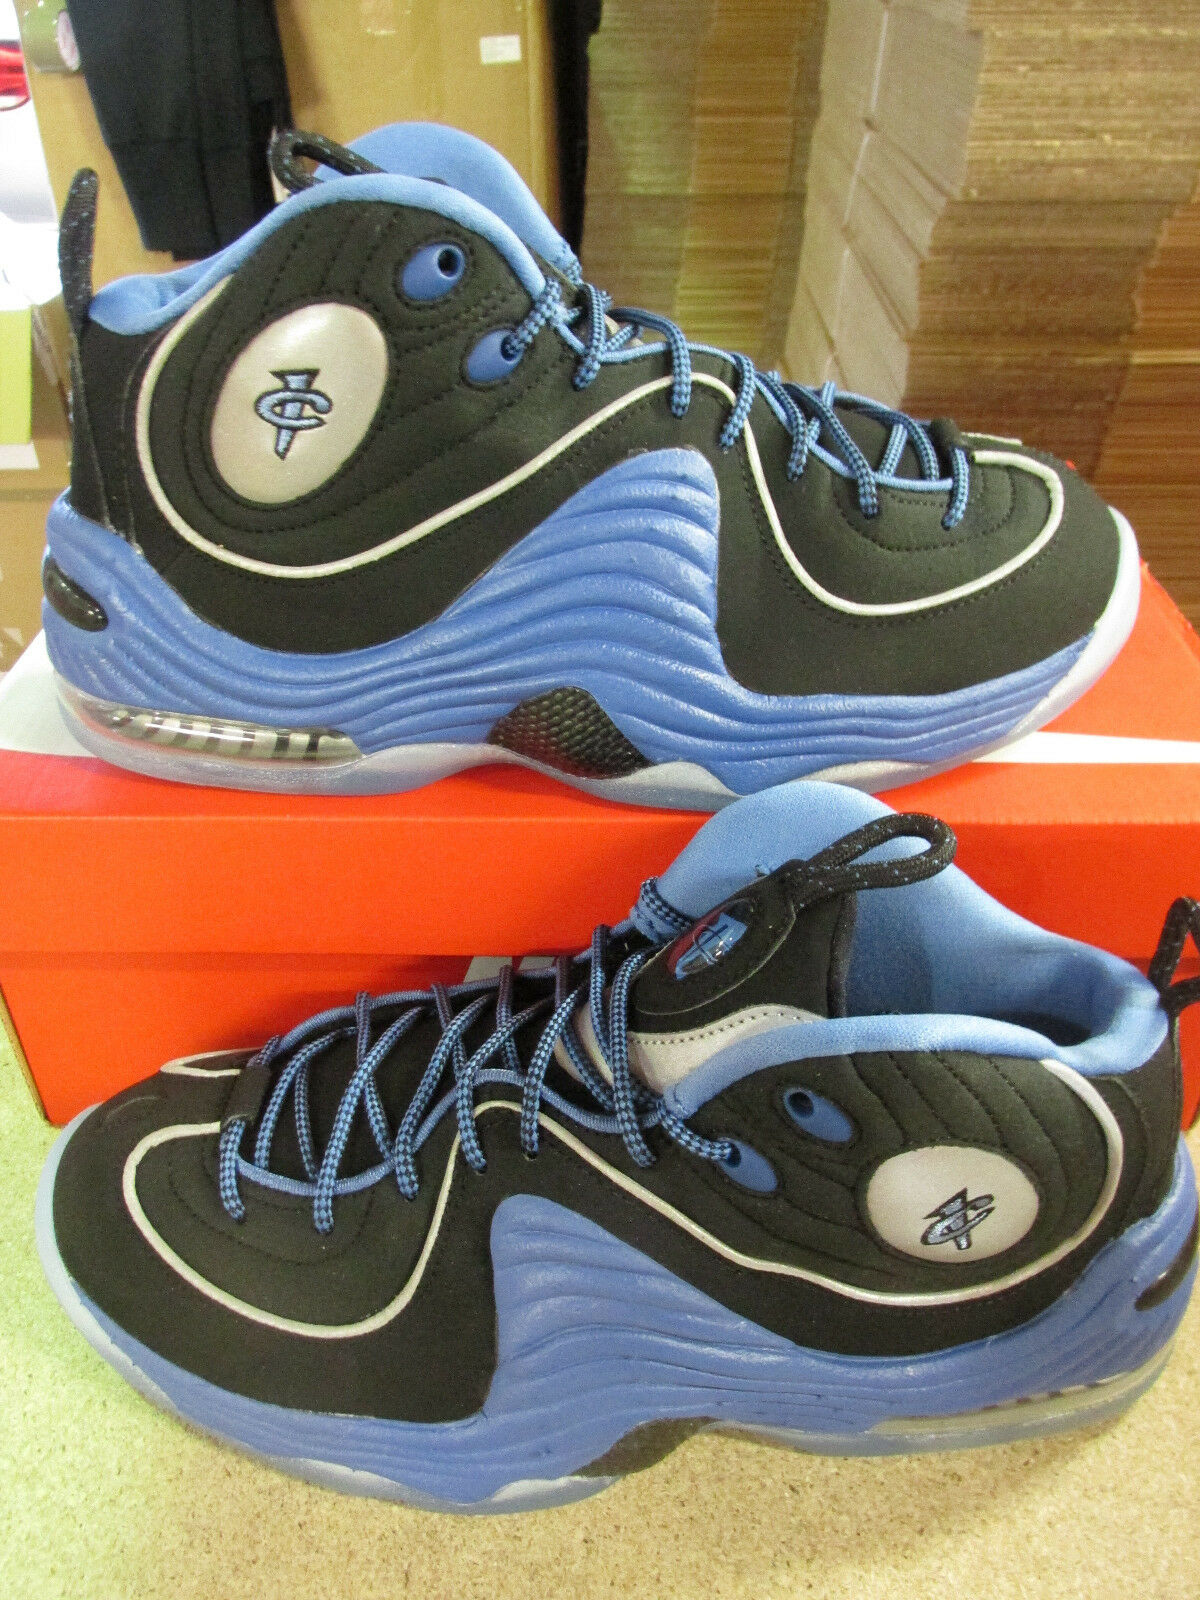 Nike Air Penny II Mens Hi Top Basketball Trainers 333886 005 Sneakers Shoes Wild casual shoes